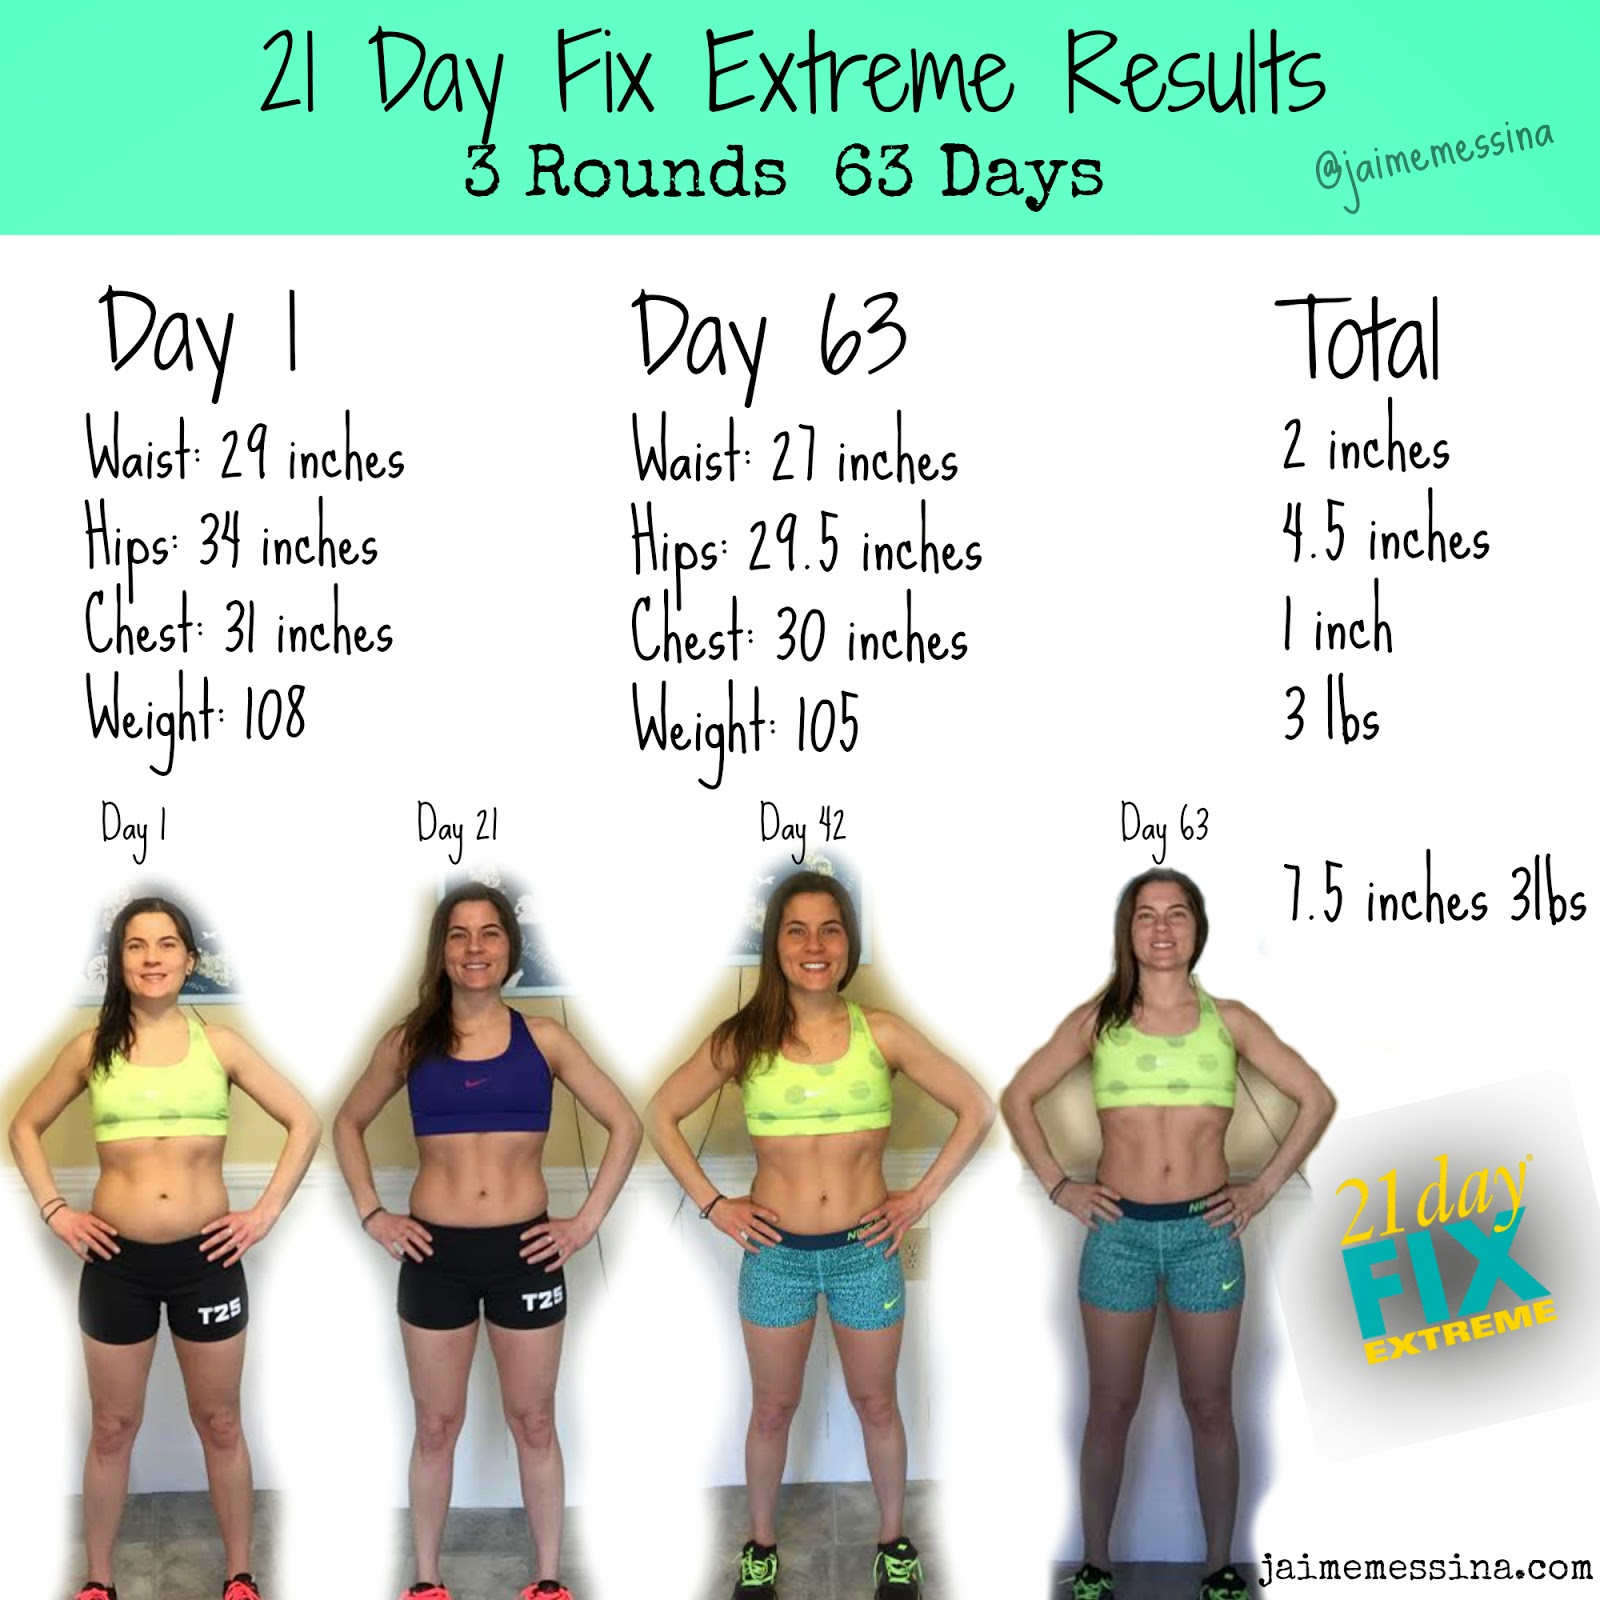 21 day fix extreme, results, meal plan, Jaime Messina , Autumn Calabrese, countdown to competition